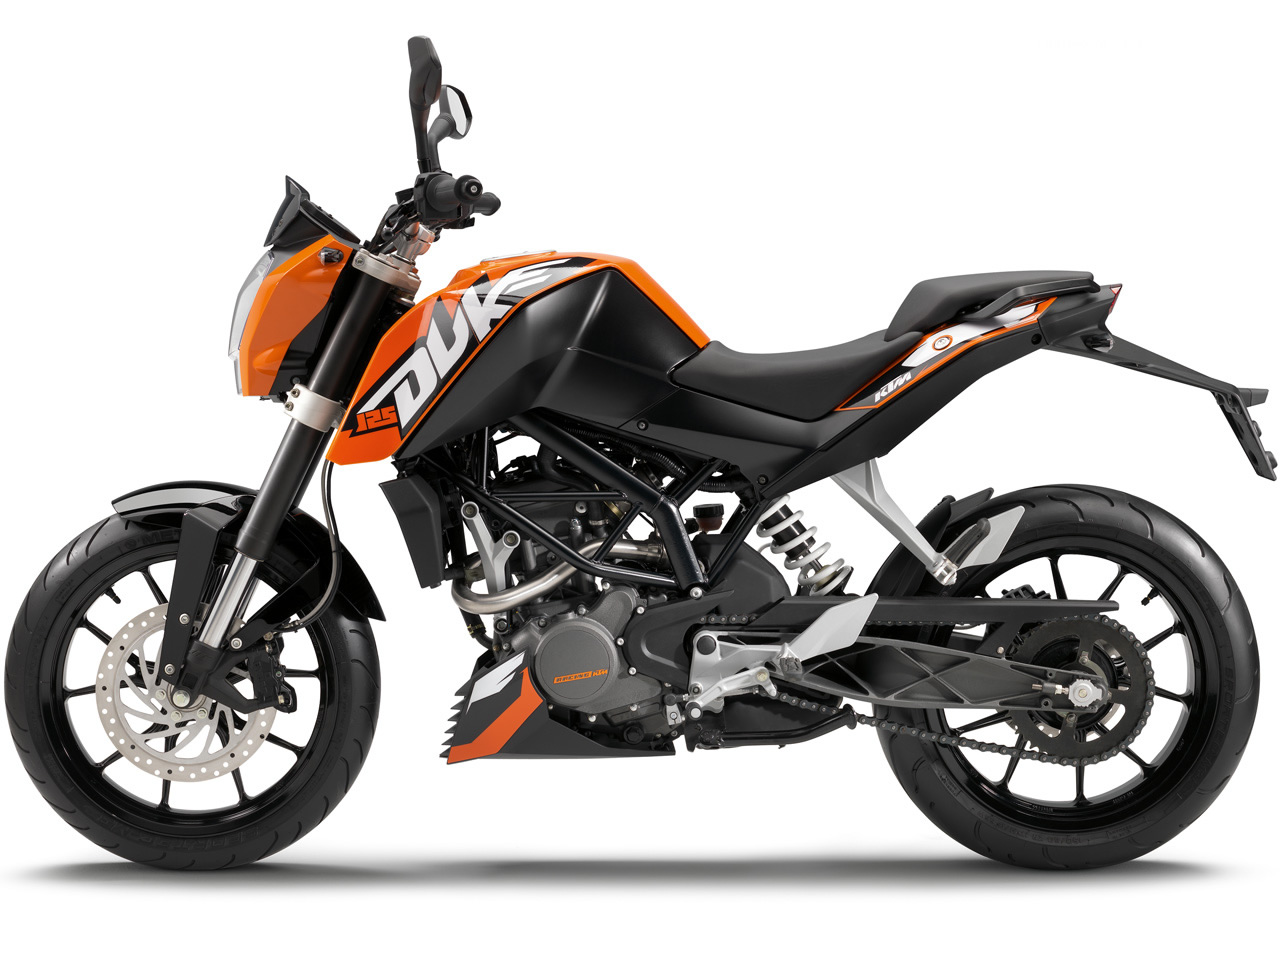 latest bike bajaj duke ktm bike picture with all available colors. Black Bedroom Furniture Sets. Home Design Ideas